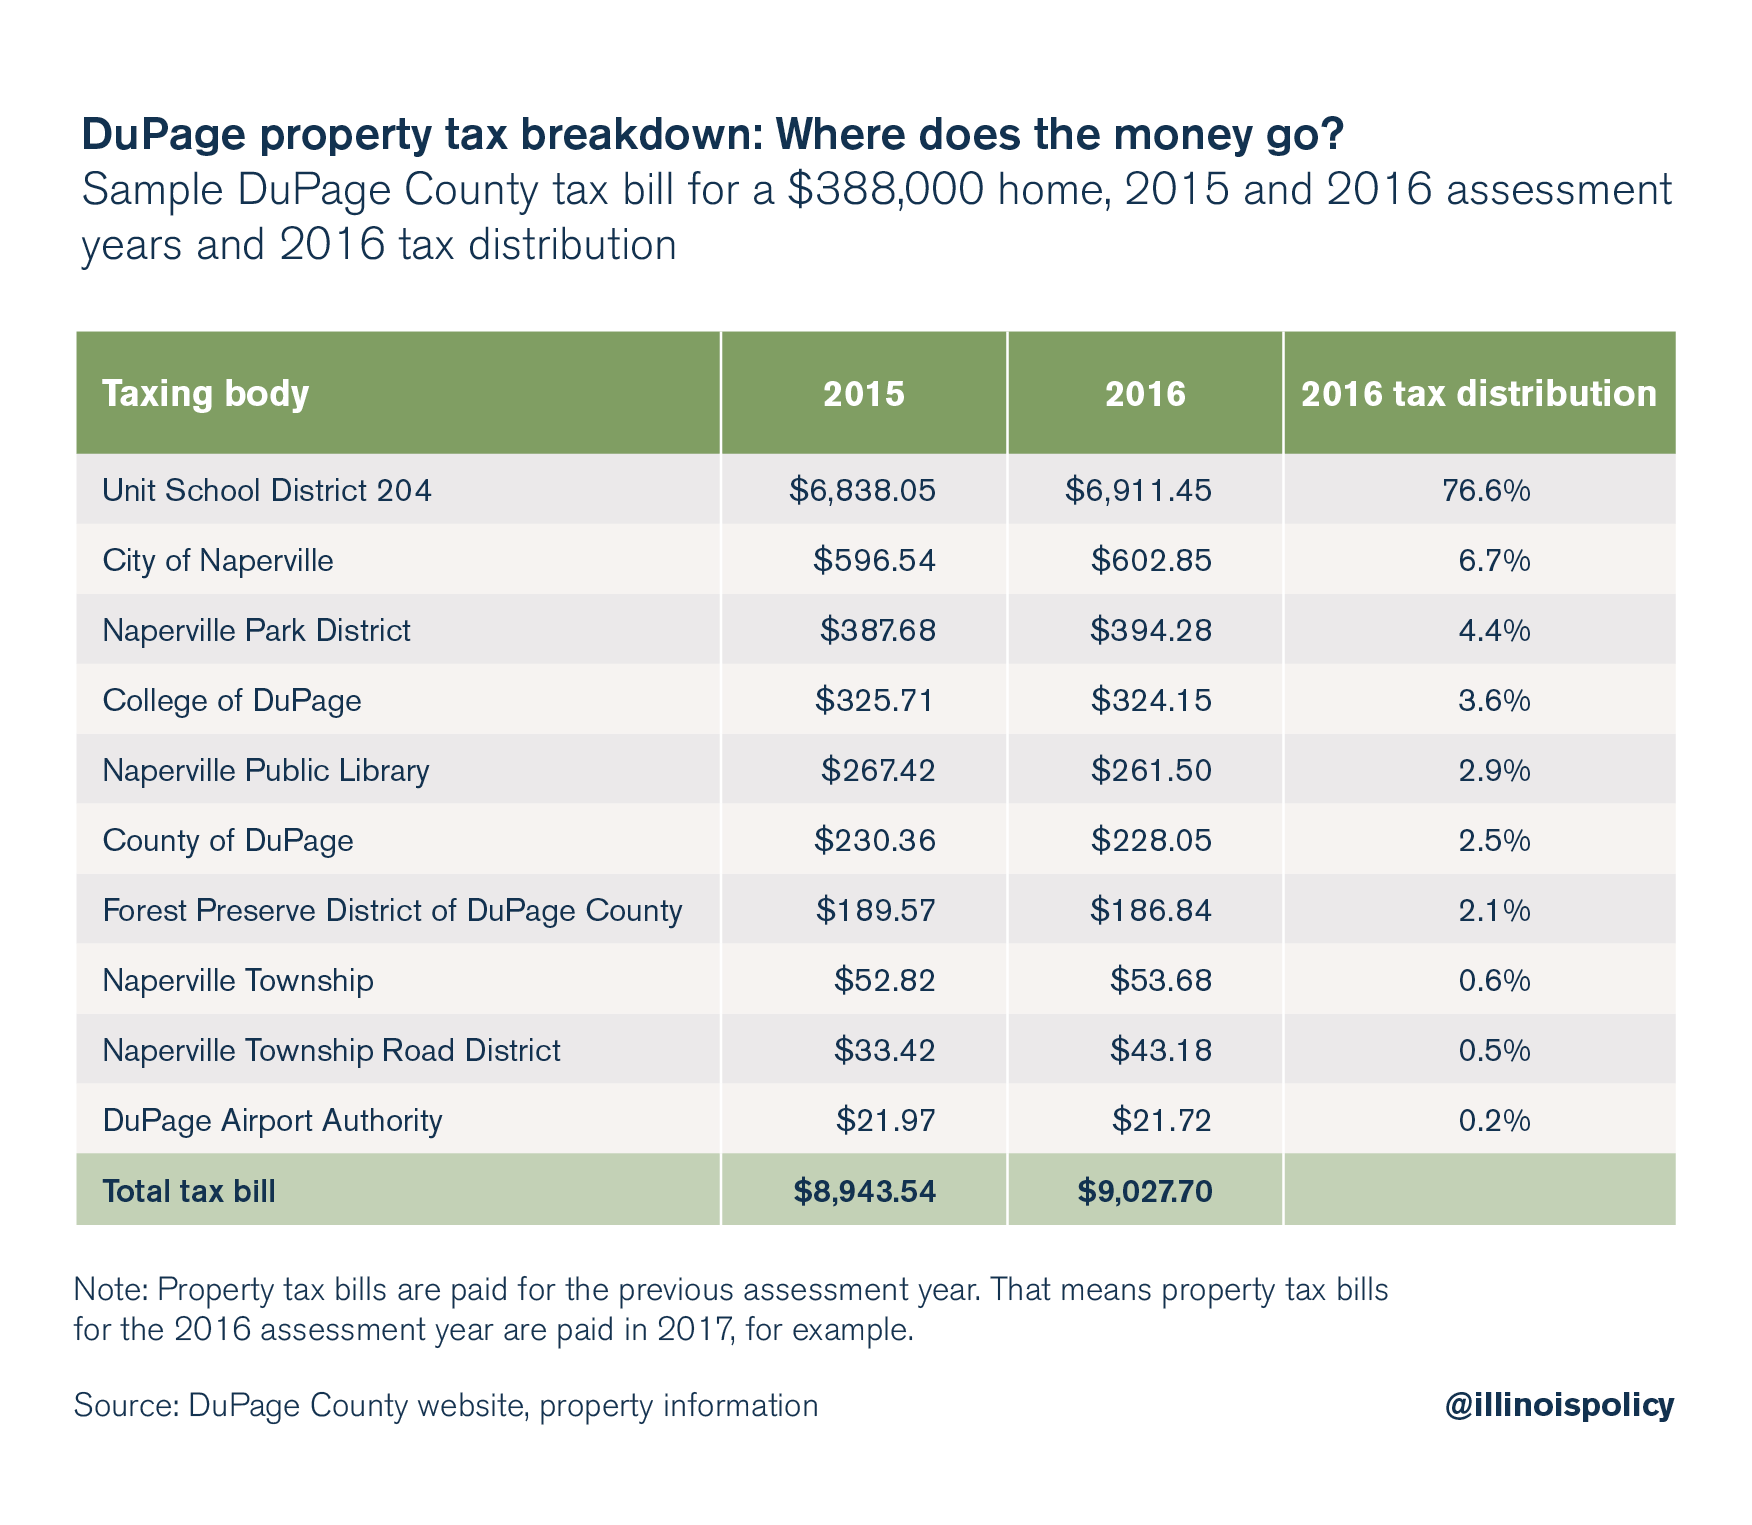 DuPage property tax breakdown: Where does the money go?